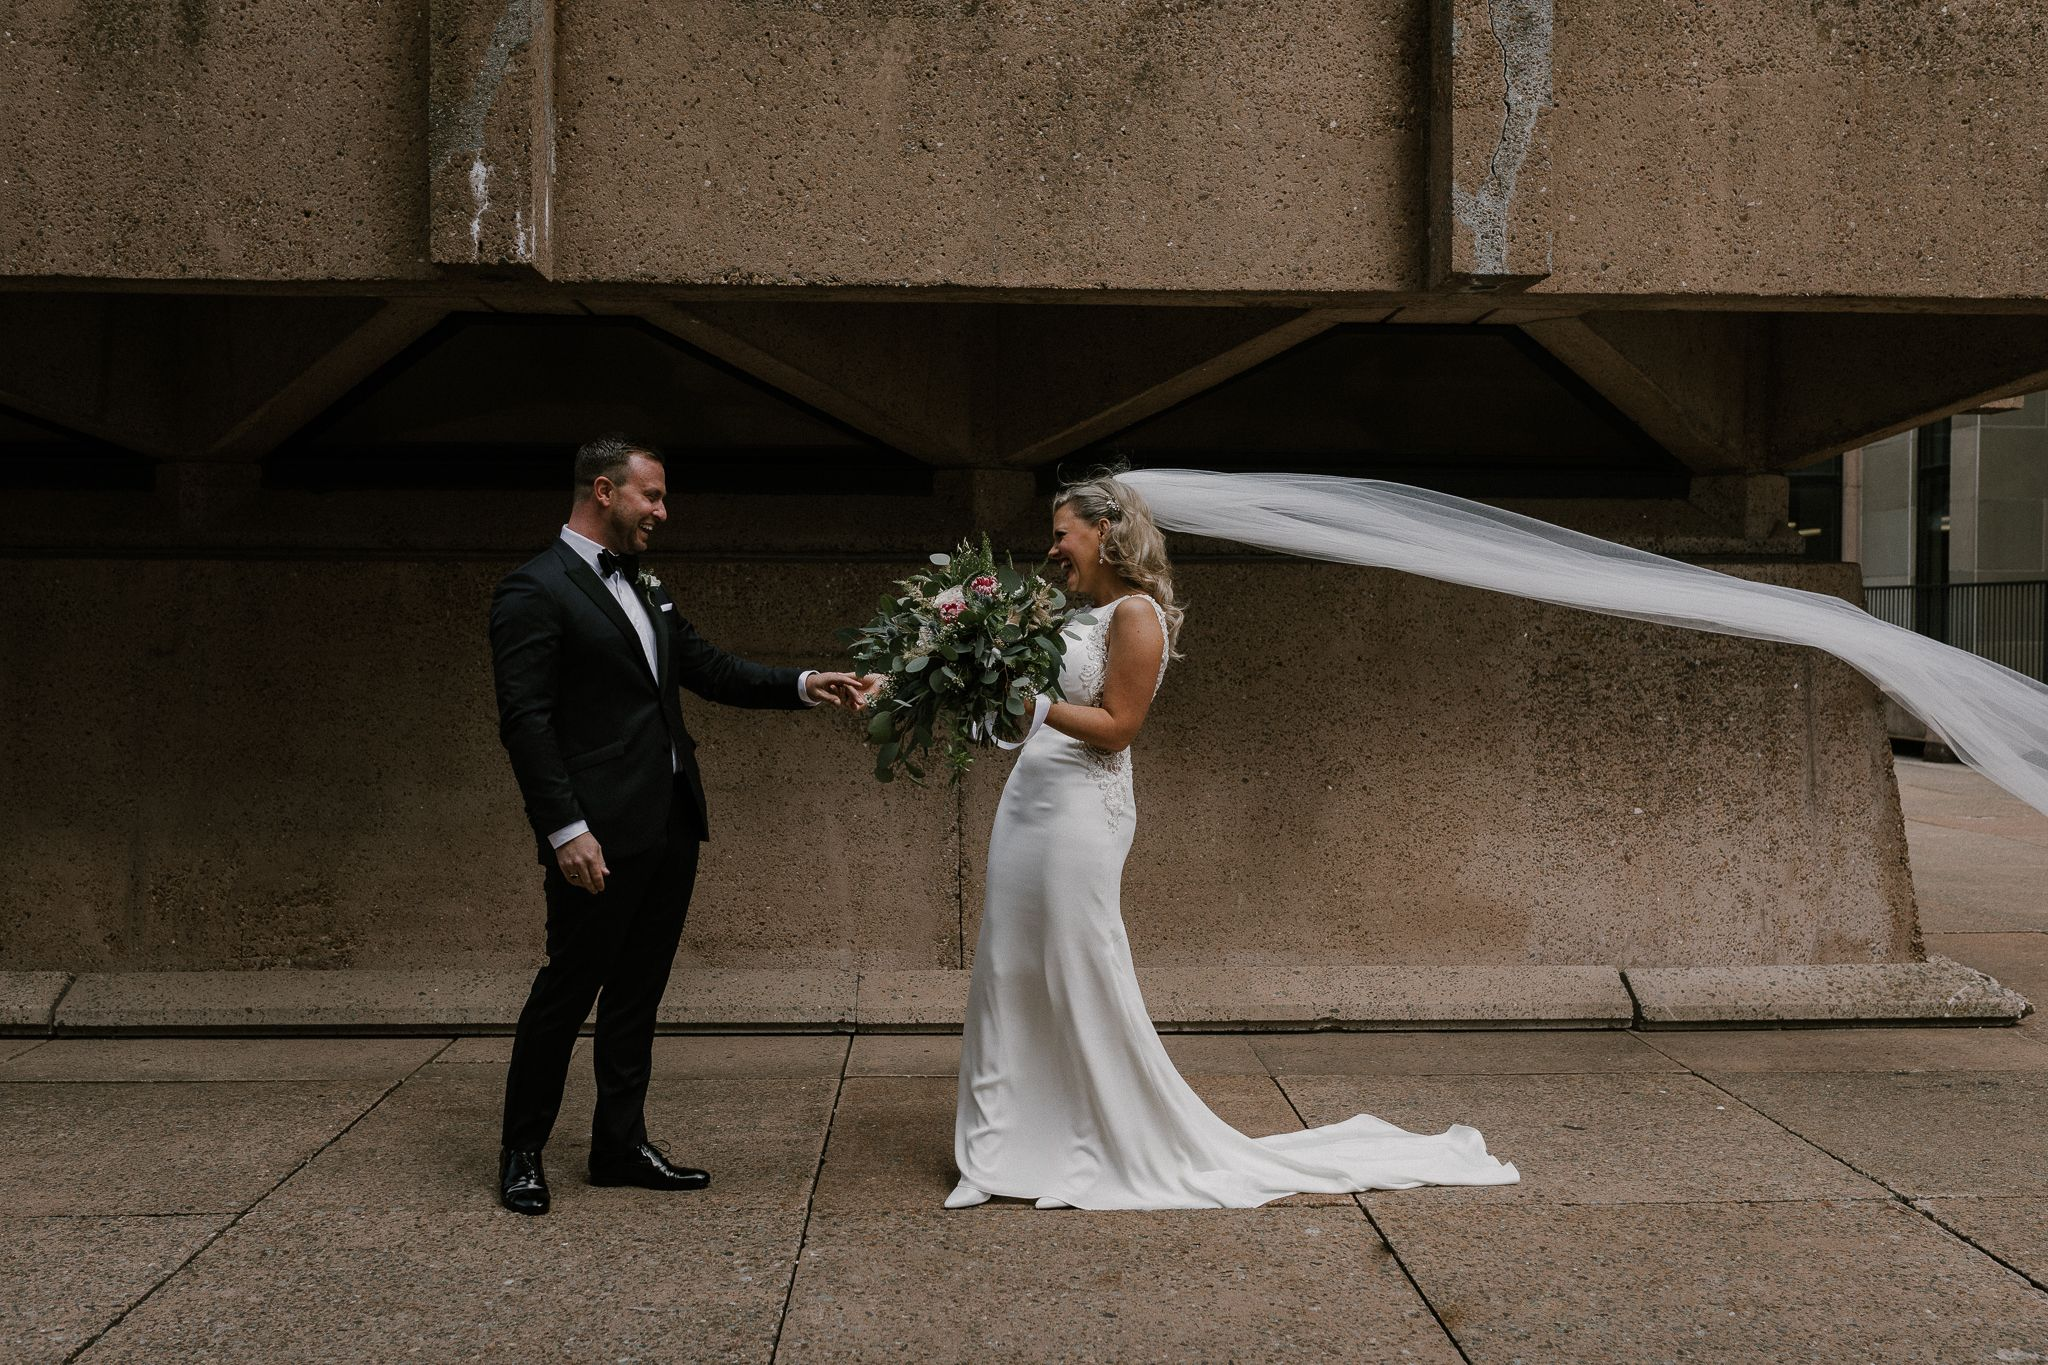 Bride and groom during first look at PEI Confederation Center with the bride's veil flowing in the wind.